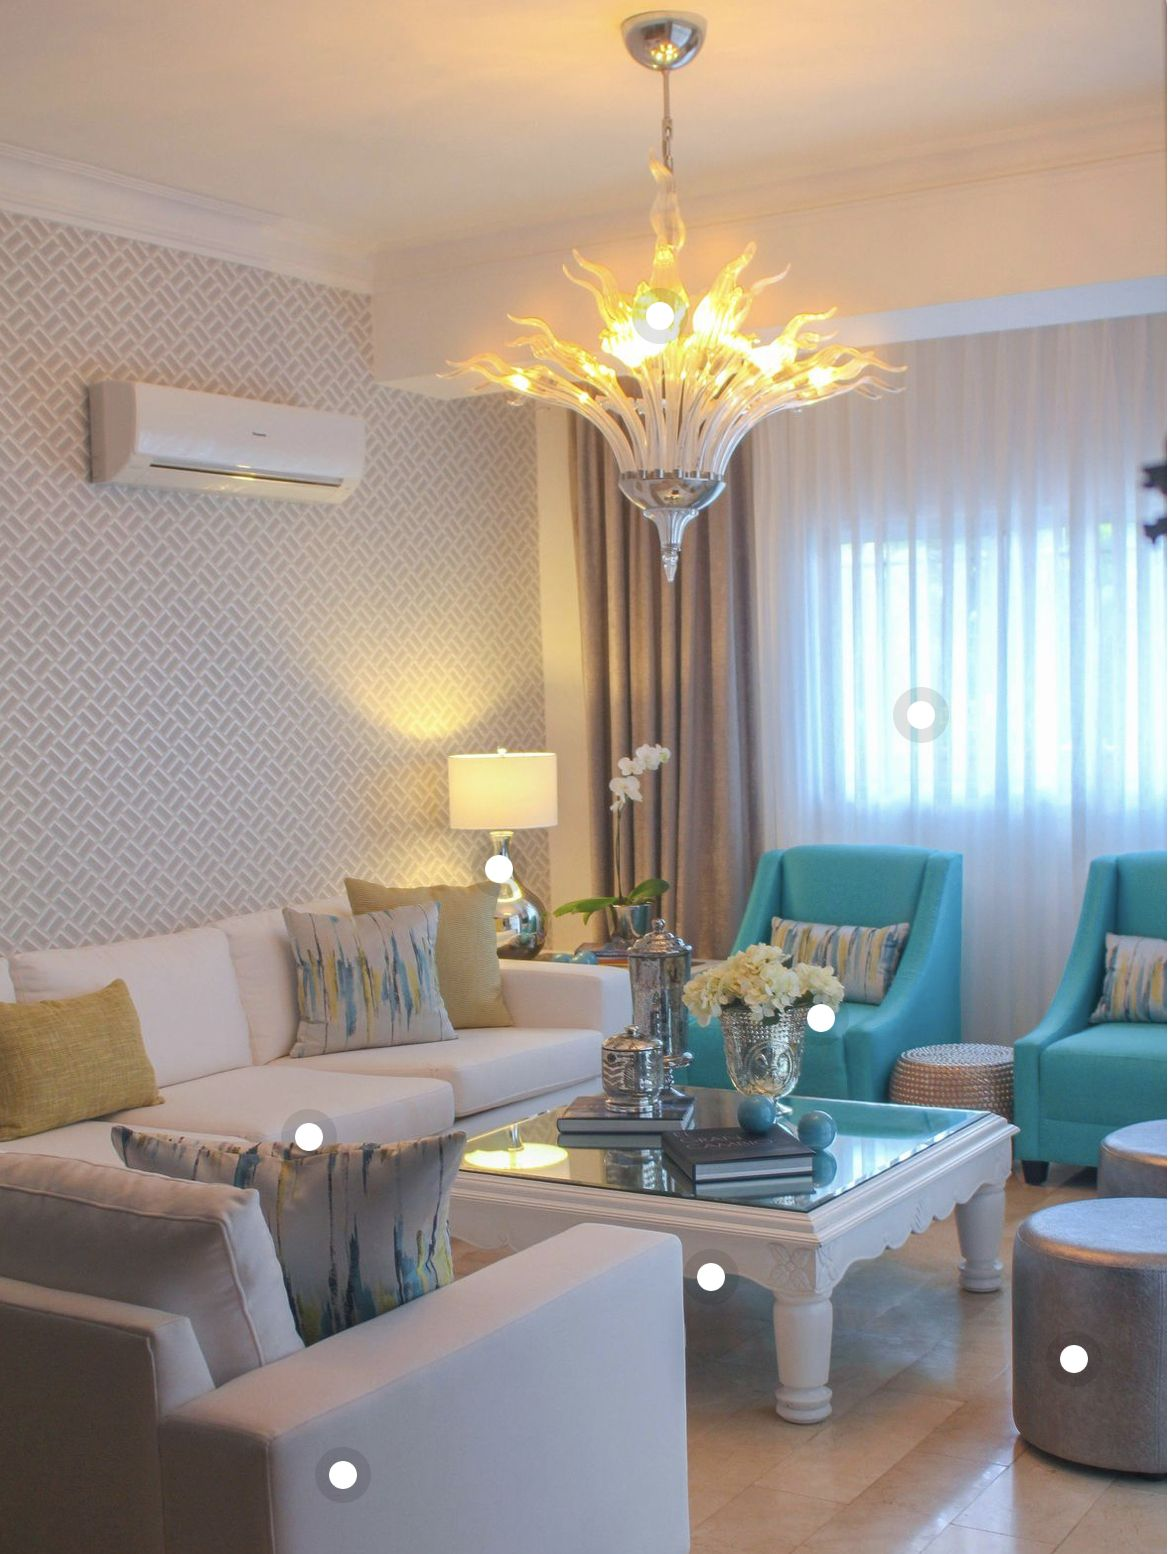 Interior Design Ideas For Sitting Rooms: Pin By Karyn Pataconi On Interior Design In 2019